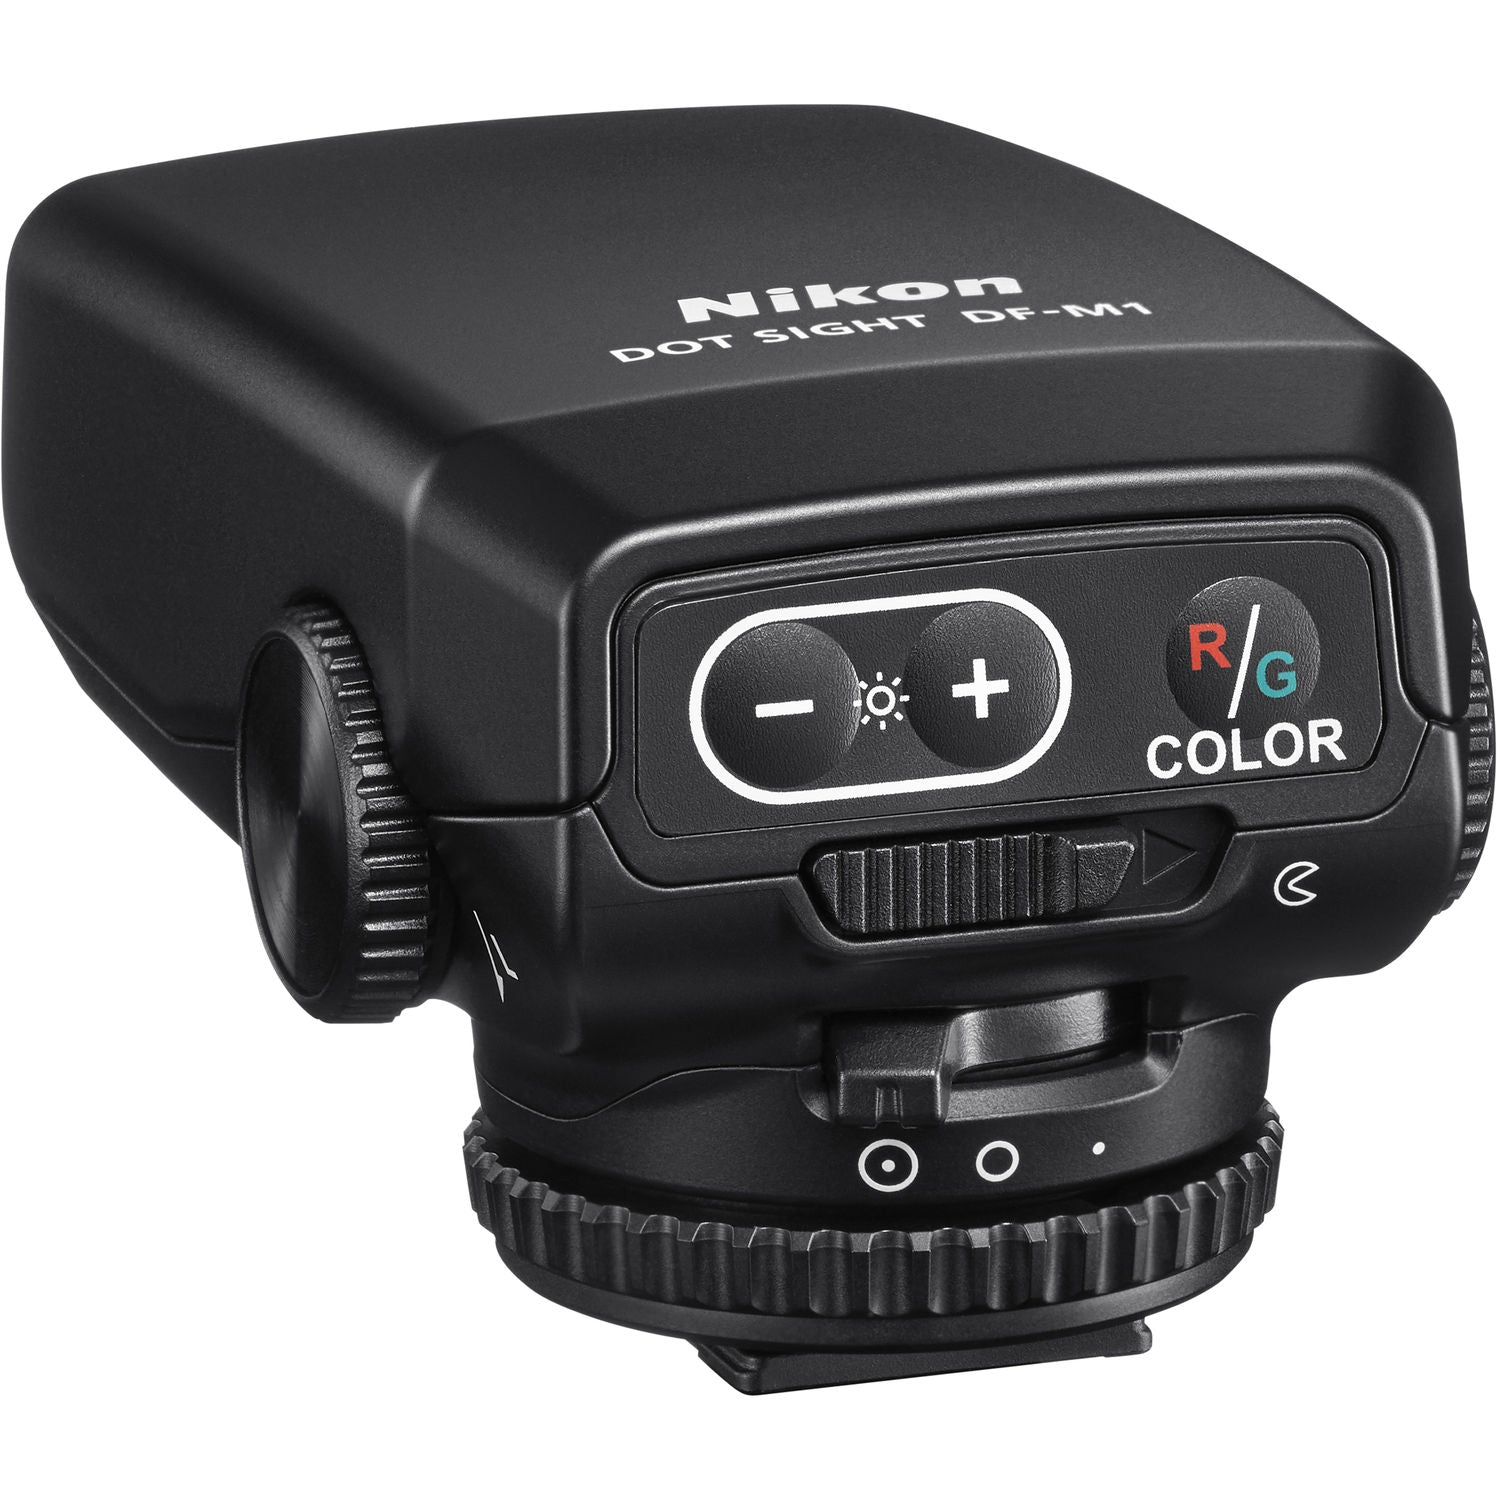 Nikon DF-M1 Dot Sight for tracking